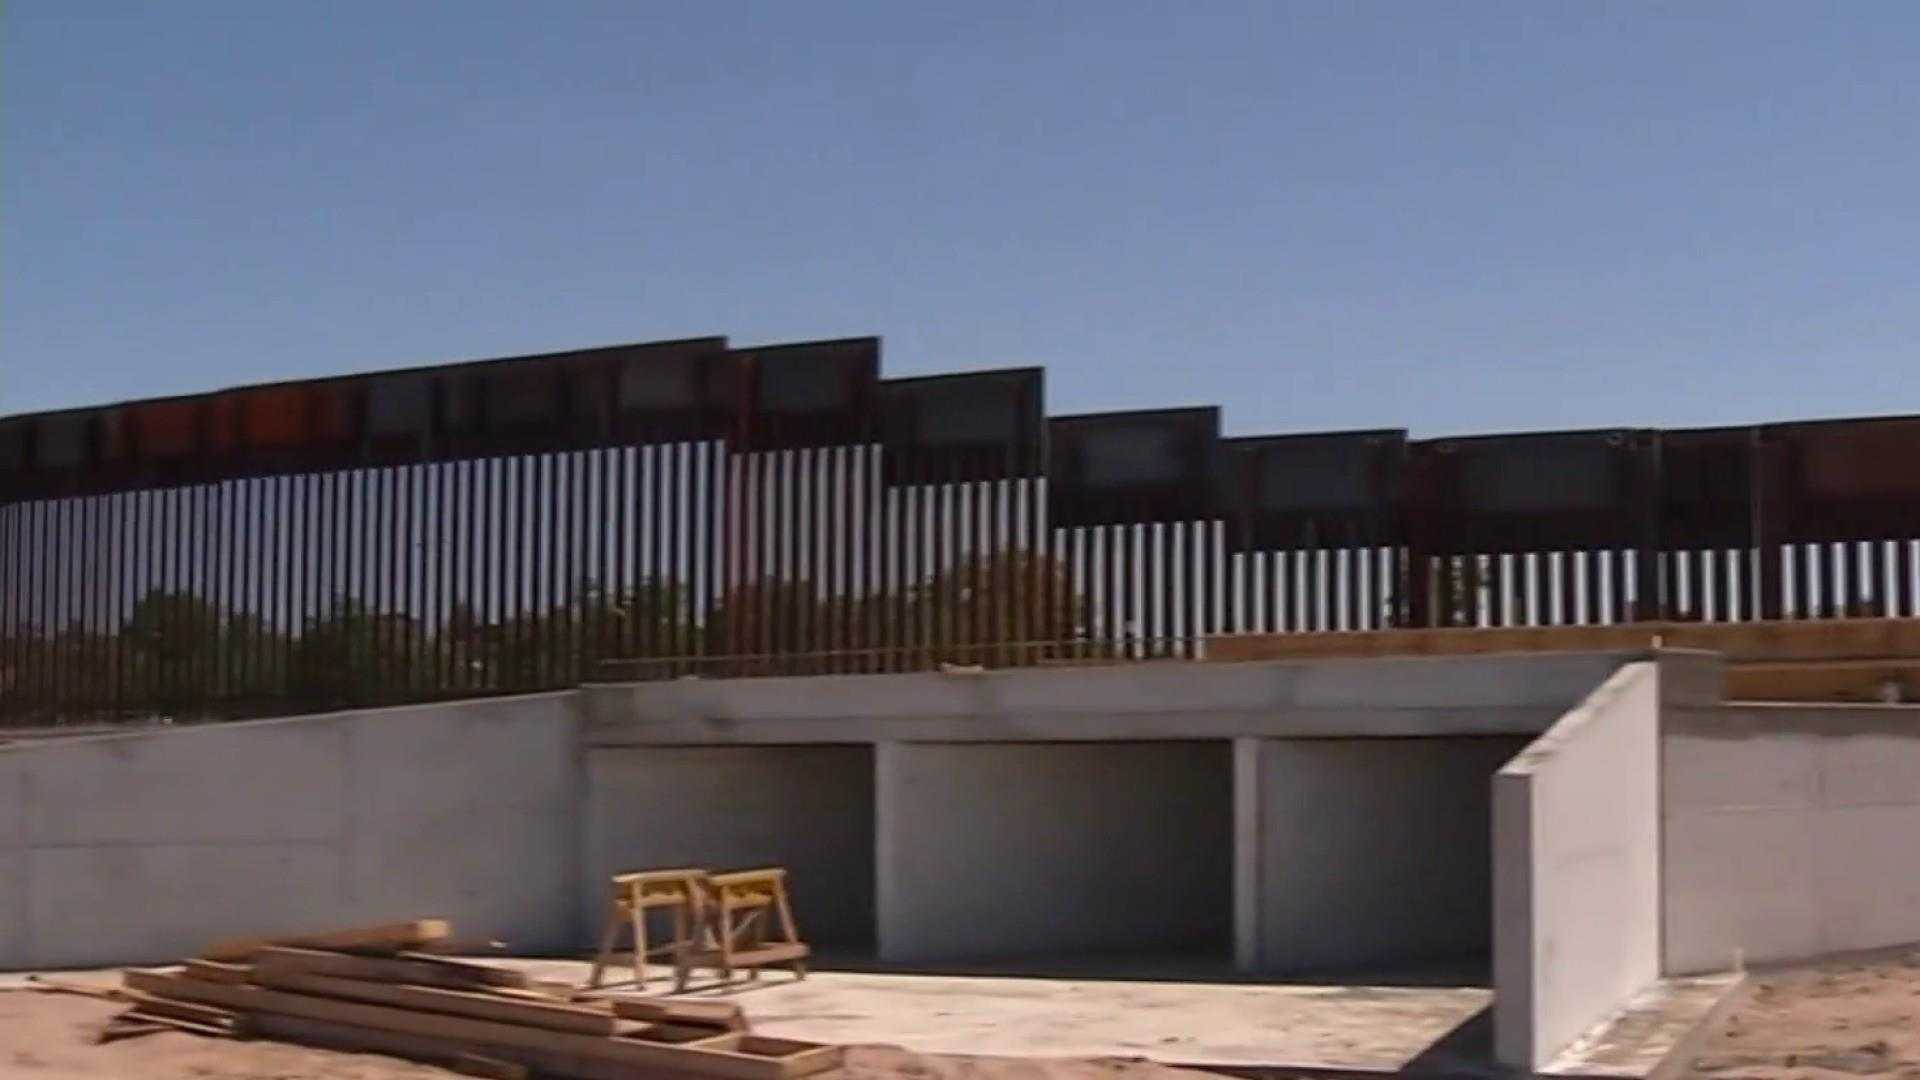 Trump's plan to pay for border wall with Air Force funds is national security risk, report says